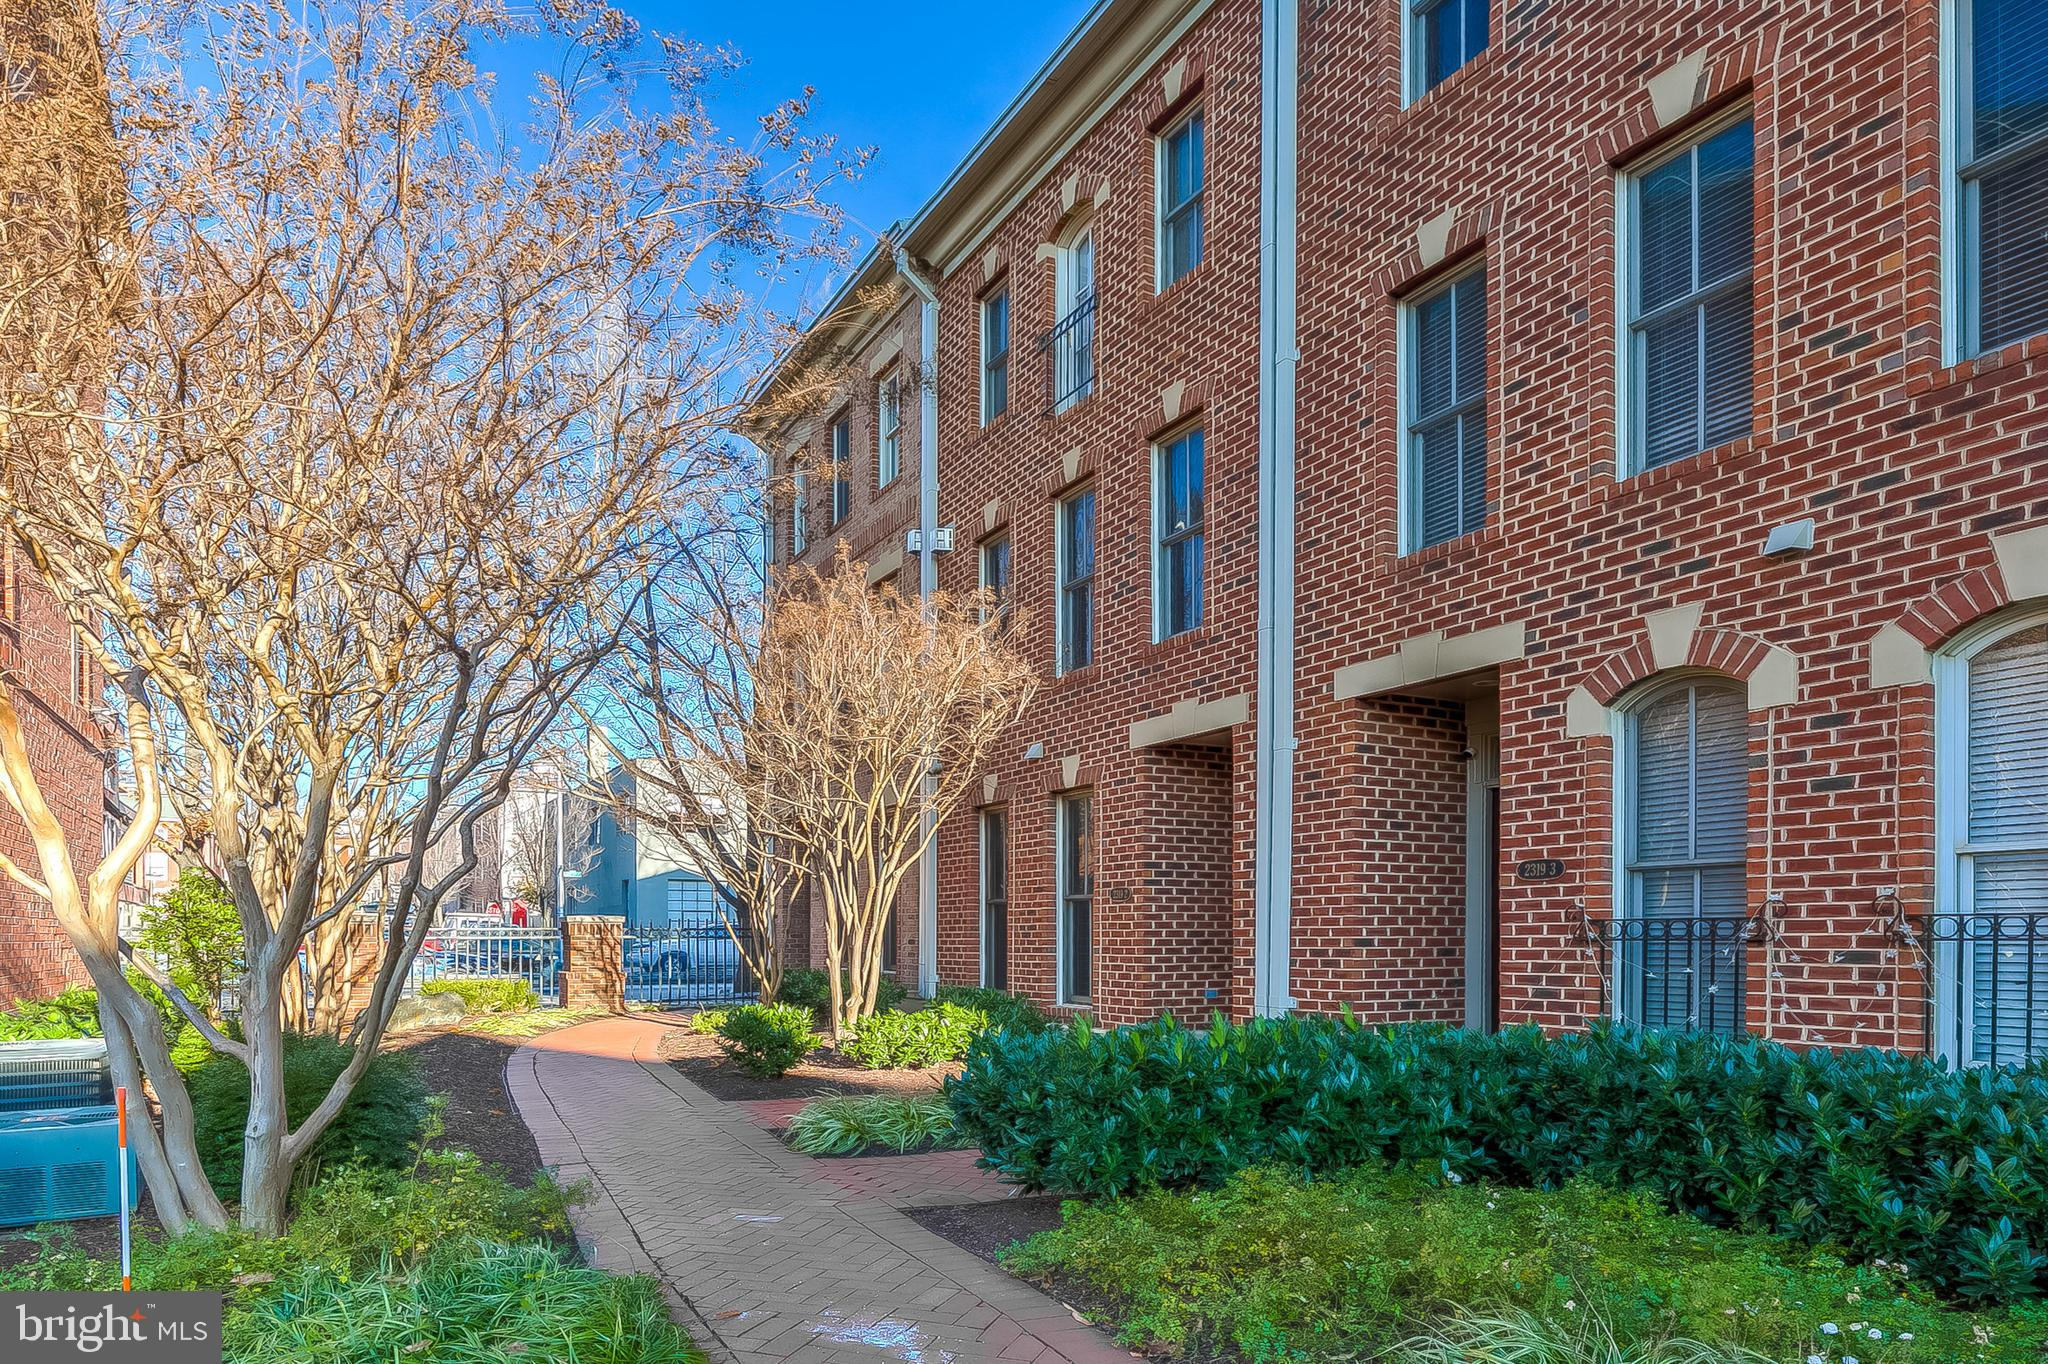 Come  fall in love with this picture prefect three bedroom   townhouse in Canton's quiet North Shore Community. With 4 parking spots, you can leave the cars at home and enjoy all that Baltimore's waterfront has to offer. Just steps to the beautiful Inner Harbor Promenade where you can head east towards the eight acre Canton Waterfront Park or follow the promenade all the way around the Inner Harbor to Locust Point and Ft. McHenry.  This home is centrally located walking distance to the many shops, restaurants cafes and more in  Canton Square, Canton Crossing, Fells Point, and Harbor East. With easy commuter access to 95 and 83 you can easily drive anywhere you need to be.  At home, enjoy baking and cooking in the gourmet kitchen where there is plenty of counter space for even the most adventurous cook. With an oversized pantry, you will always have just what you need on hand. Enjoy dining, working  or just relaxing on your private rear balcony. The generously proportioned  Living Room provides two sitting areas or a sitting area and formal dining space. The upper level offers a restful and renewing Owner's Suite with oversized soaking tub and separate shower. The  additional second floor bedroom offers a partial water view and makes working from home a pleasure. The two car garage includes extra storage space or.. if your choose, park in the two rear outdoor parking spots and convert the  extra large garage space into a workshop or home gym.